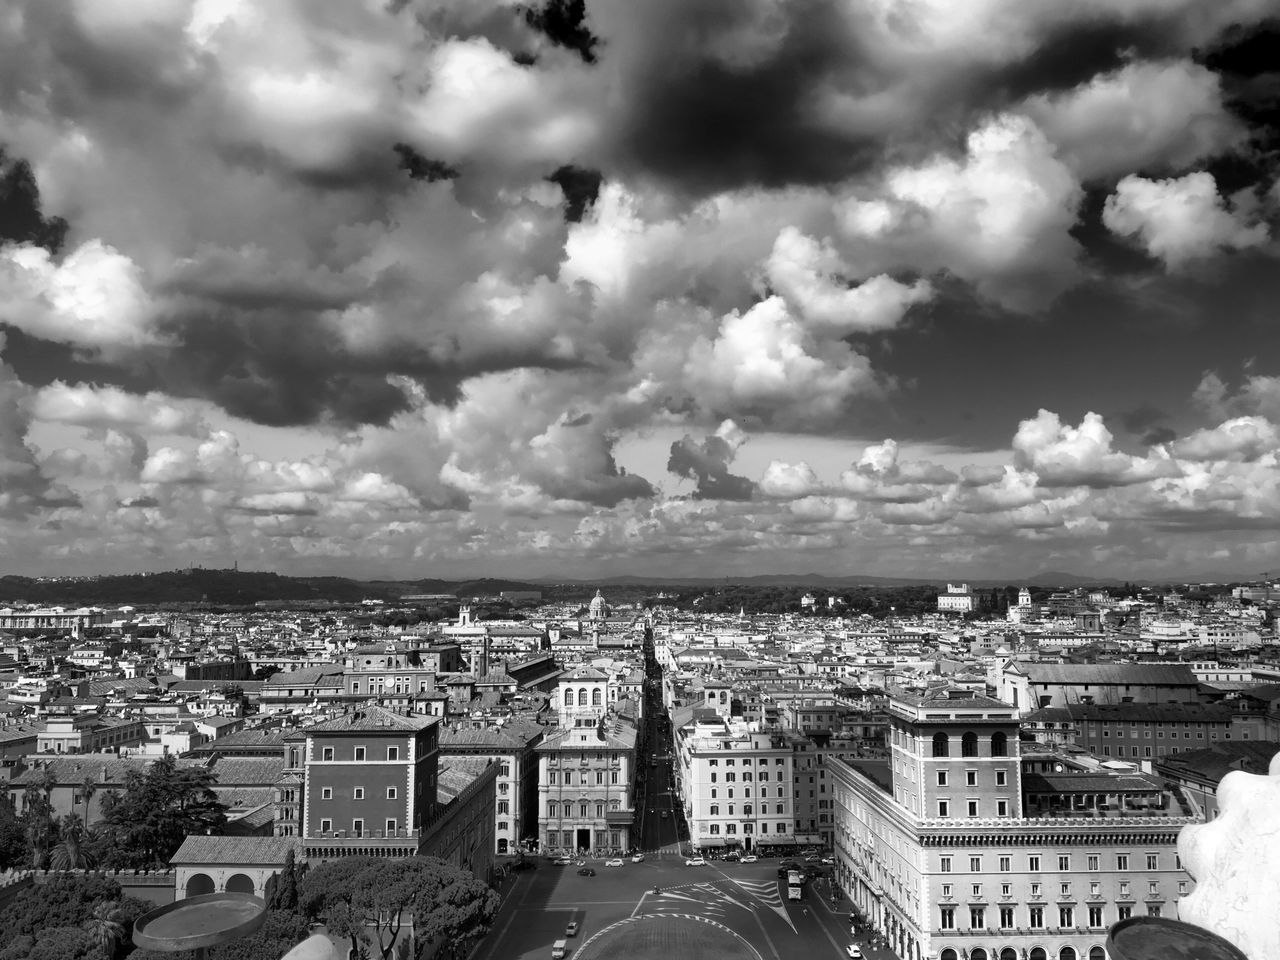 When in Rome 006 Architecture City Rome Italy High Angle View Cloud - Sky Street Black And White Black & White Photography Blackandwhite Shootermag VSCO